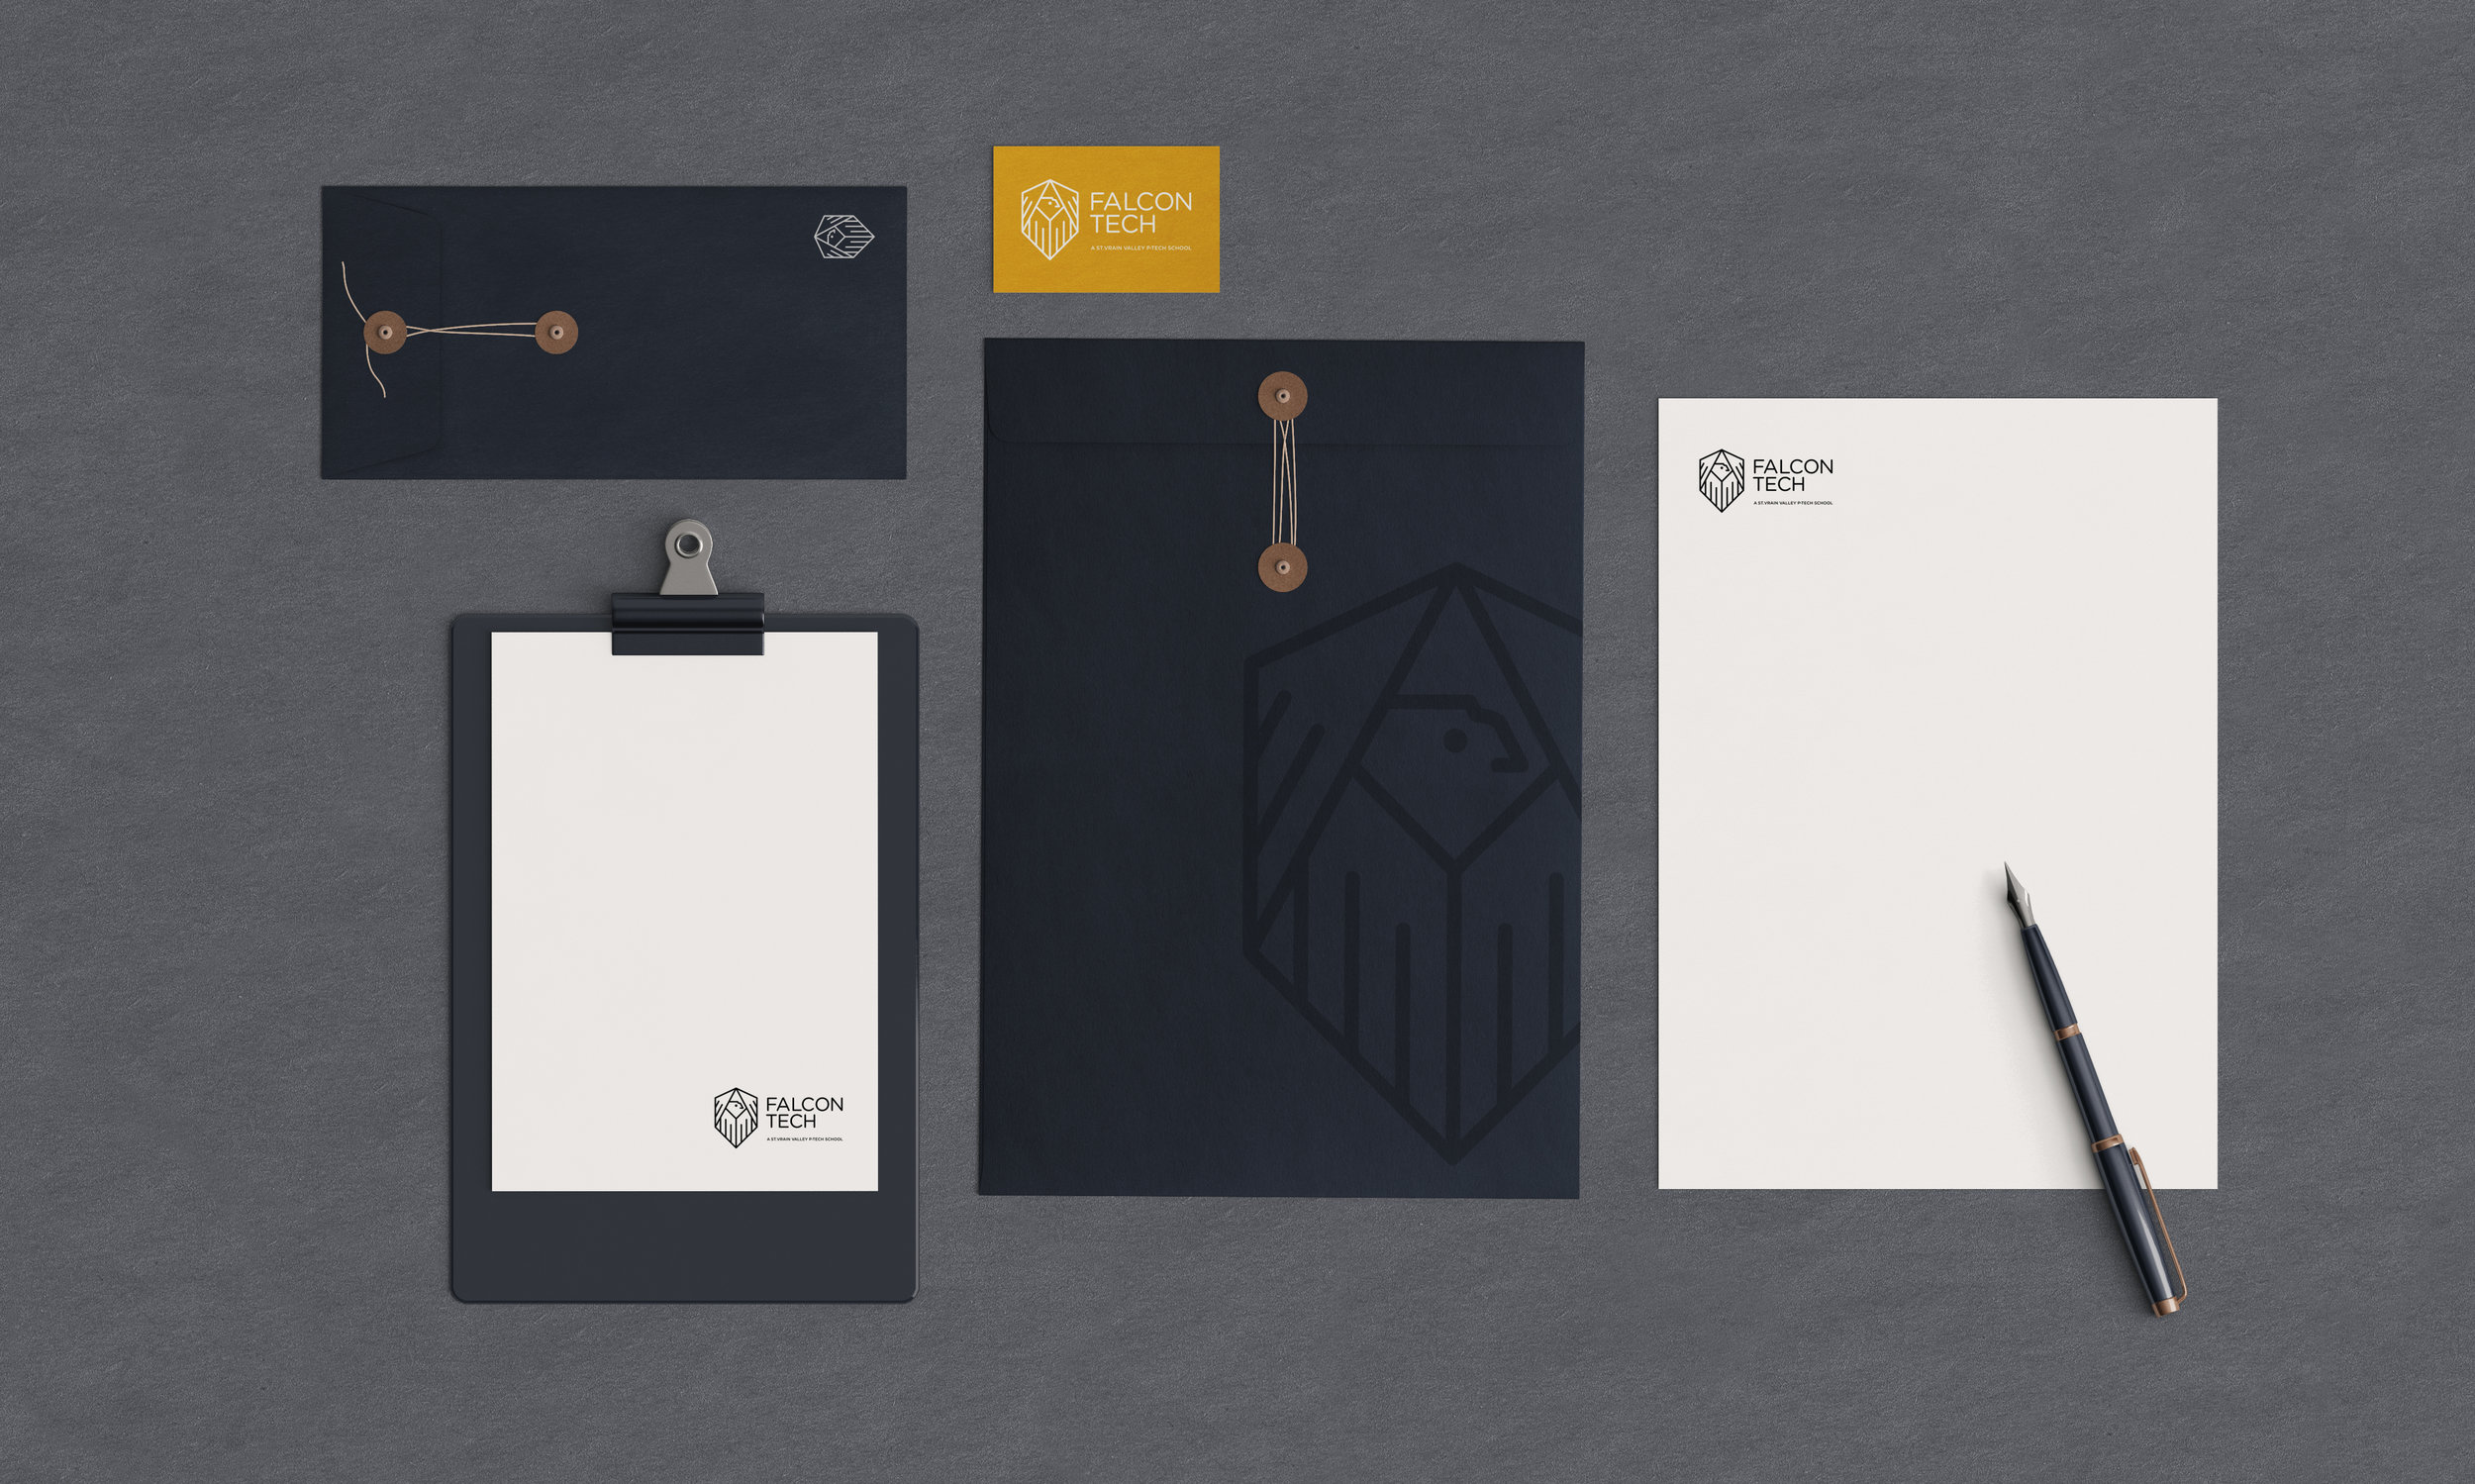 Falcon_Collection7_MockUp50_Stationery.jpg